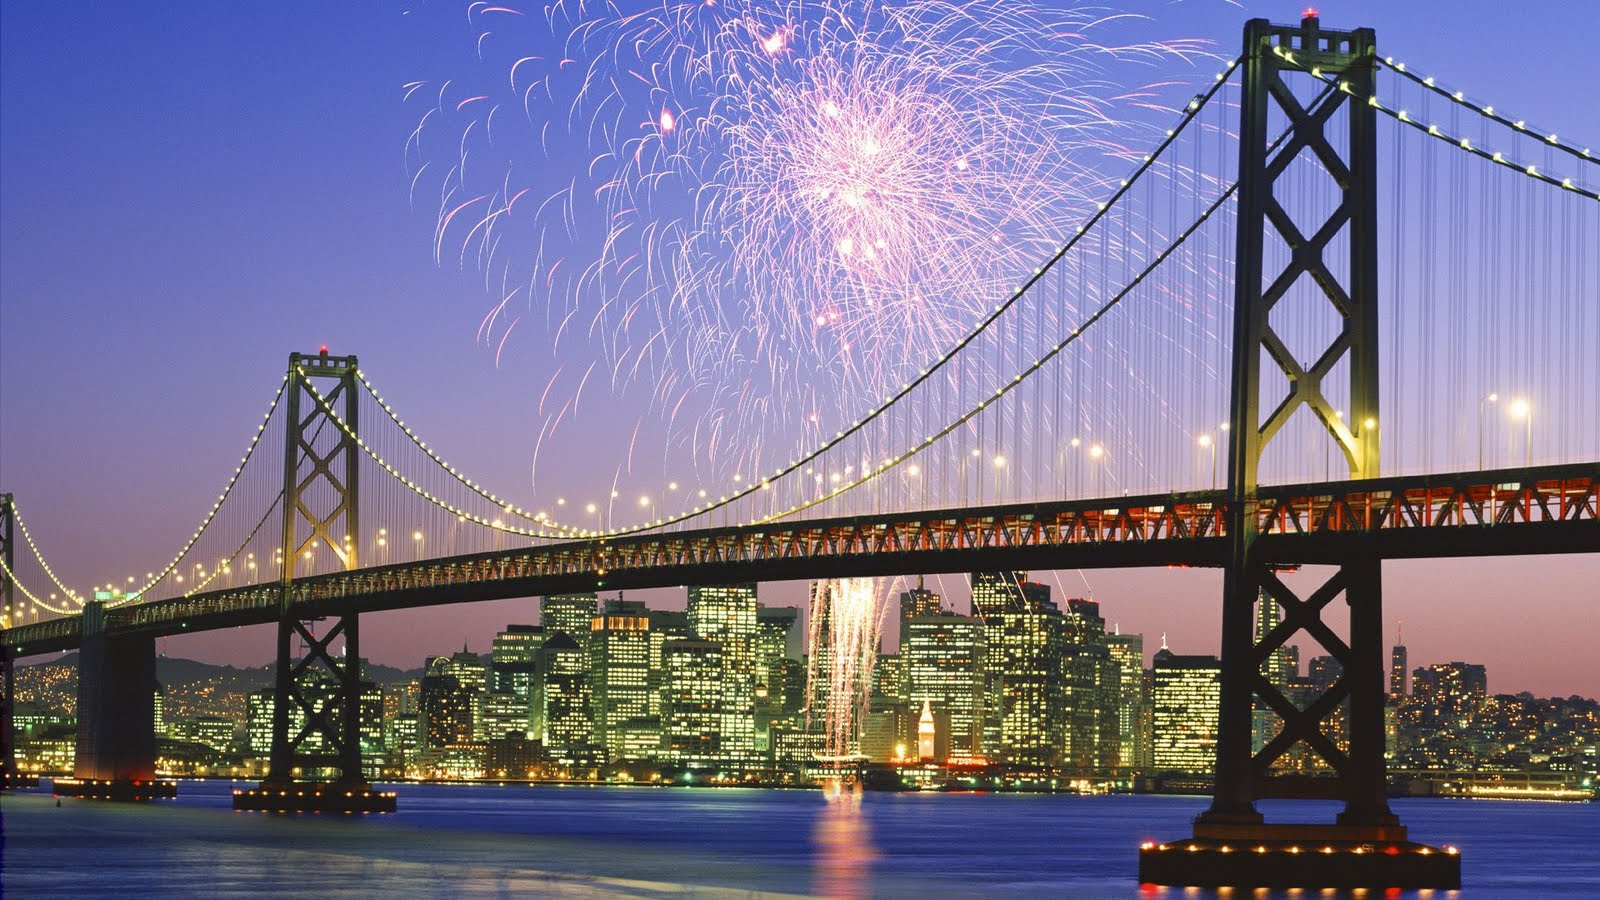 happiness in san francisco The maintaining happiness in legal practice, organized by the the bar association of san francisco will take place on 24th january 2017 at the basf conference center in san francisco, us.